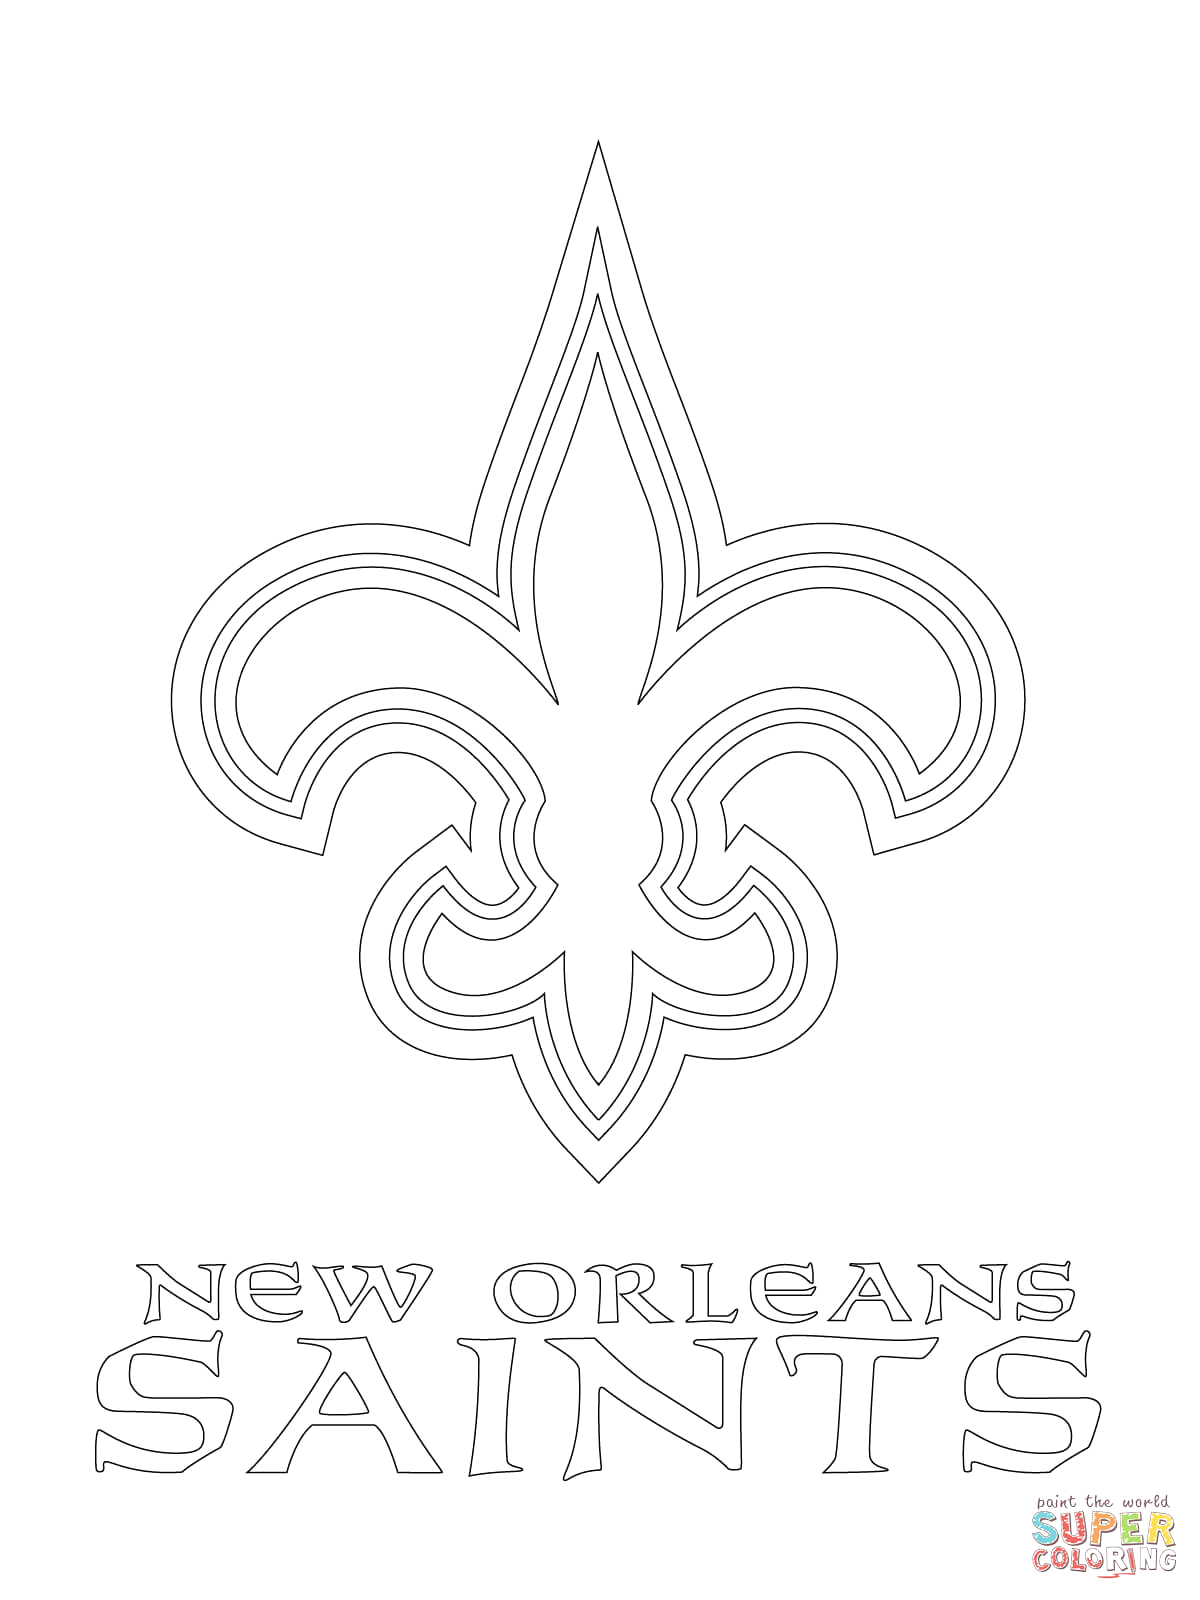 New orleans Saints Coloring Pages to Print New orleans Saints Logo Coloring Page